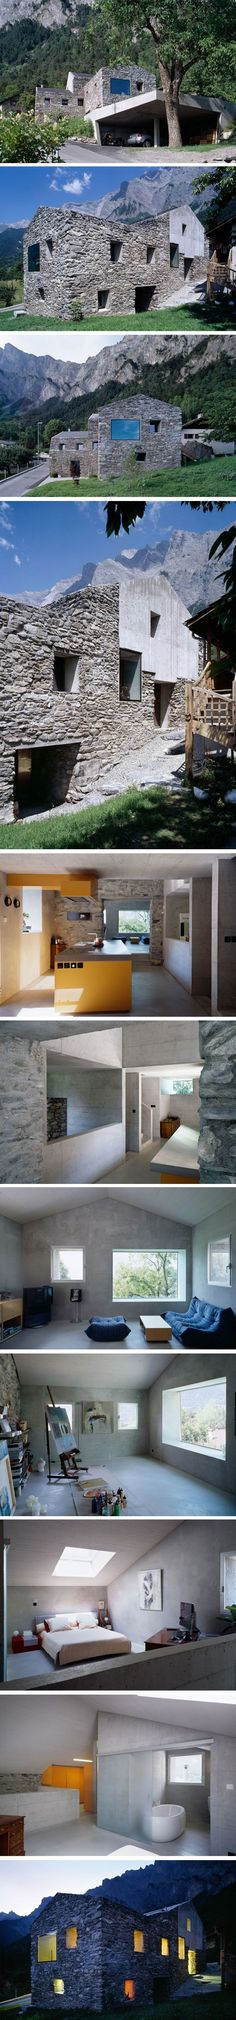 Rénovation à Chamoson par Savioz Fabrizzi Architecte; the house, the location and the studio. Not the garage.